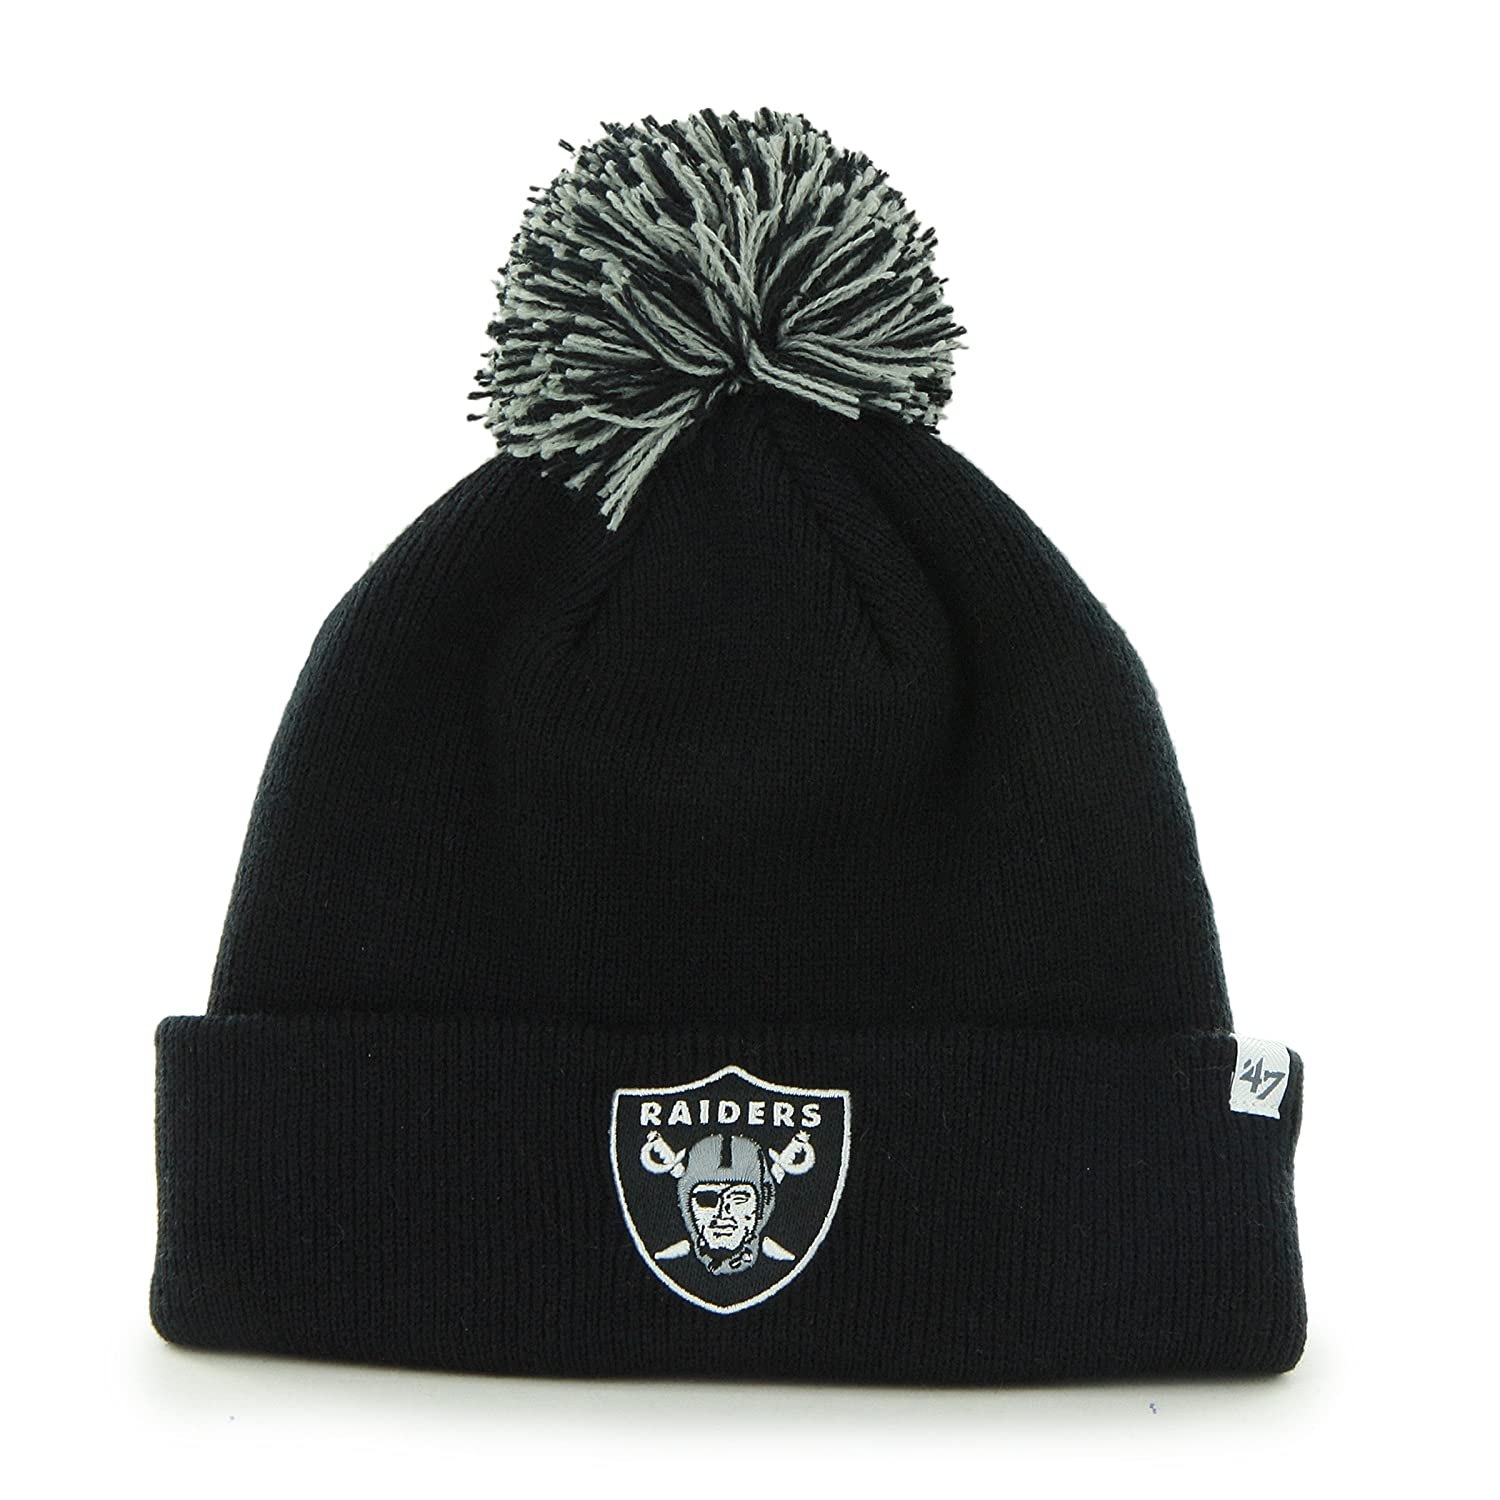 1e2cbe80d7d Oakland Raiders Black Pom Pom 2-Sided Beanie Hat - NFL LA Cuffed Winter Knit  Toque Cap by  47  Amazon.co.uk  Sports   Outdoors